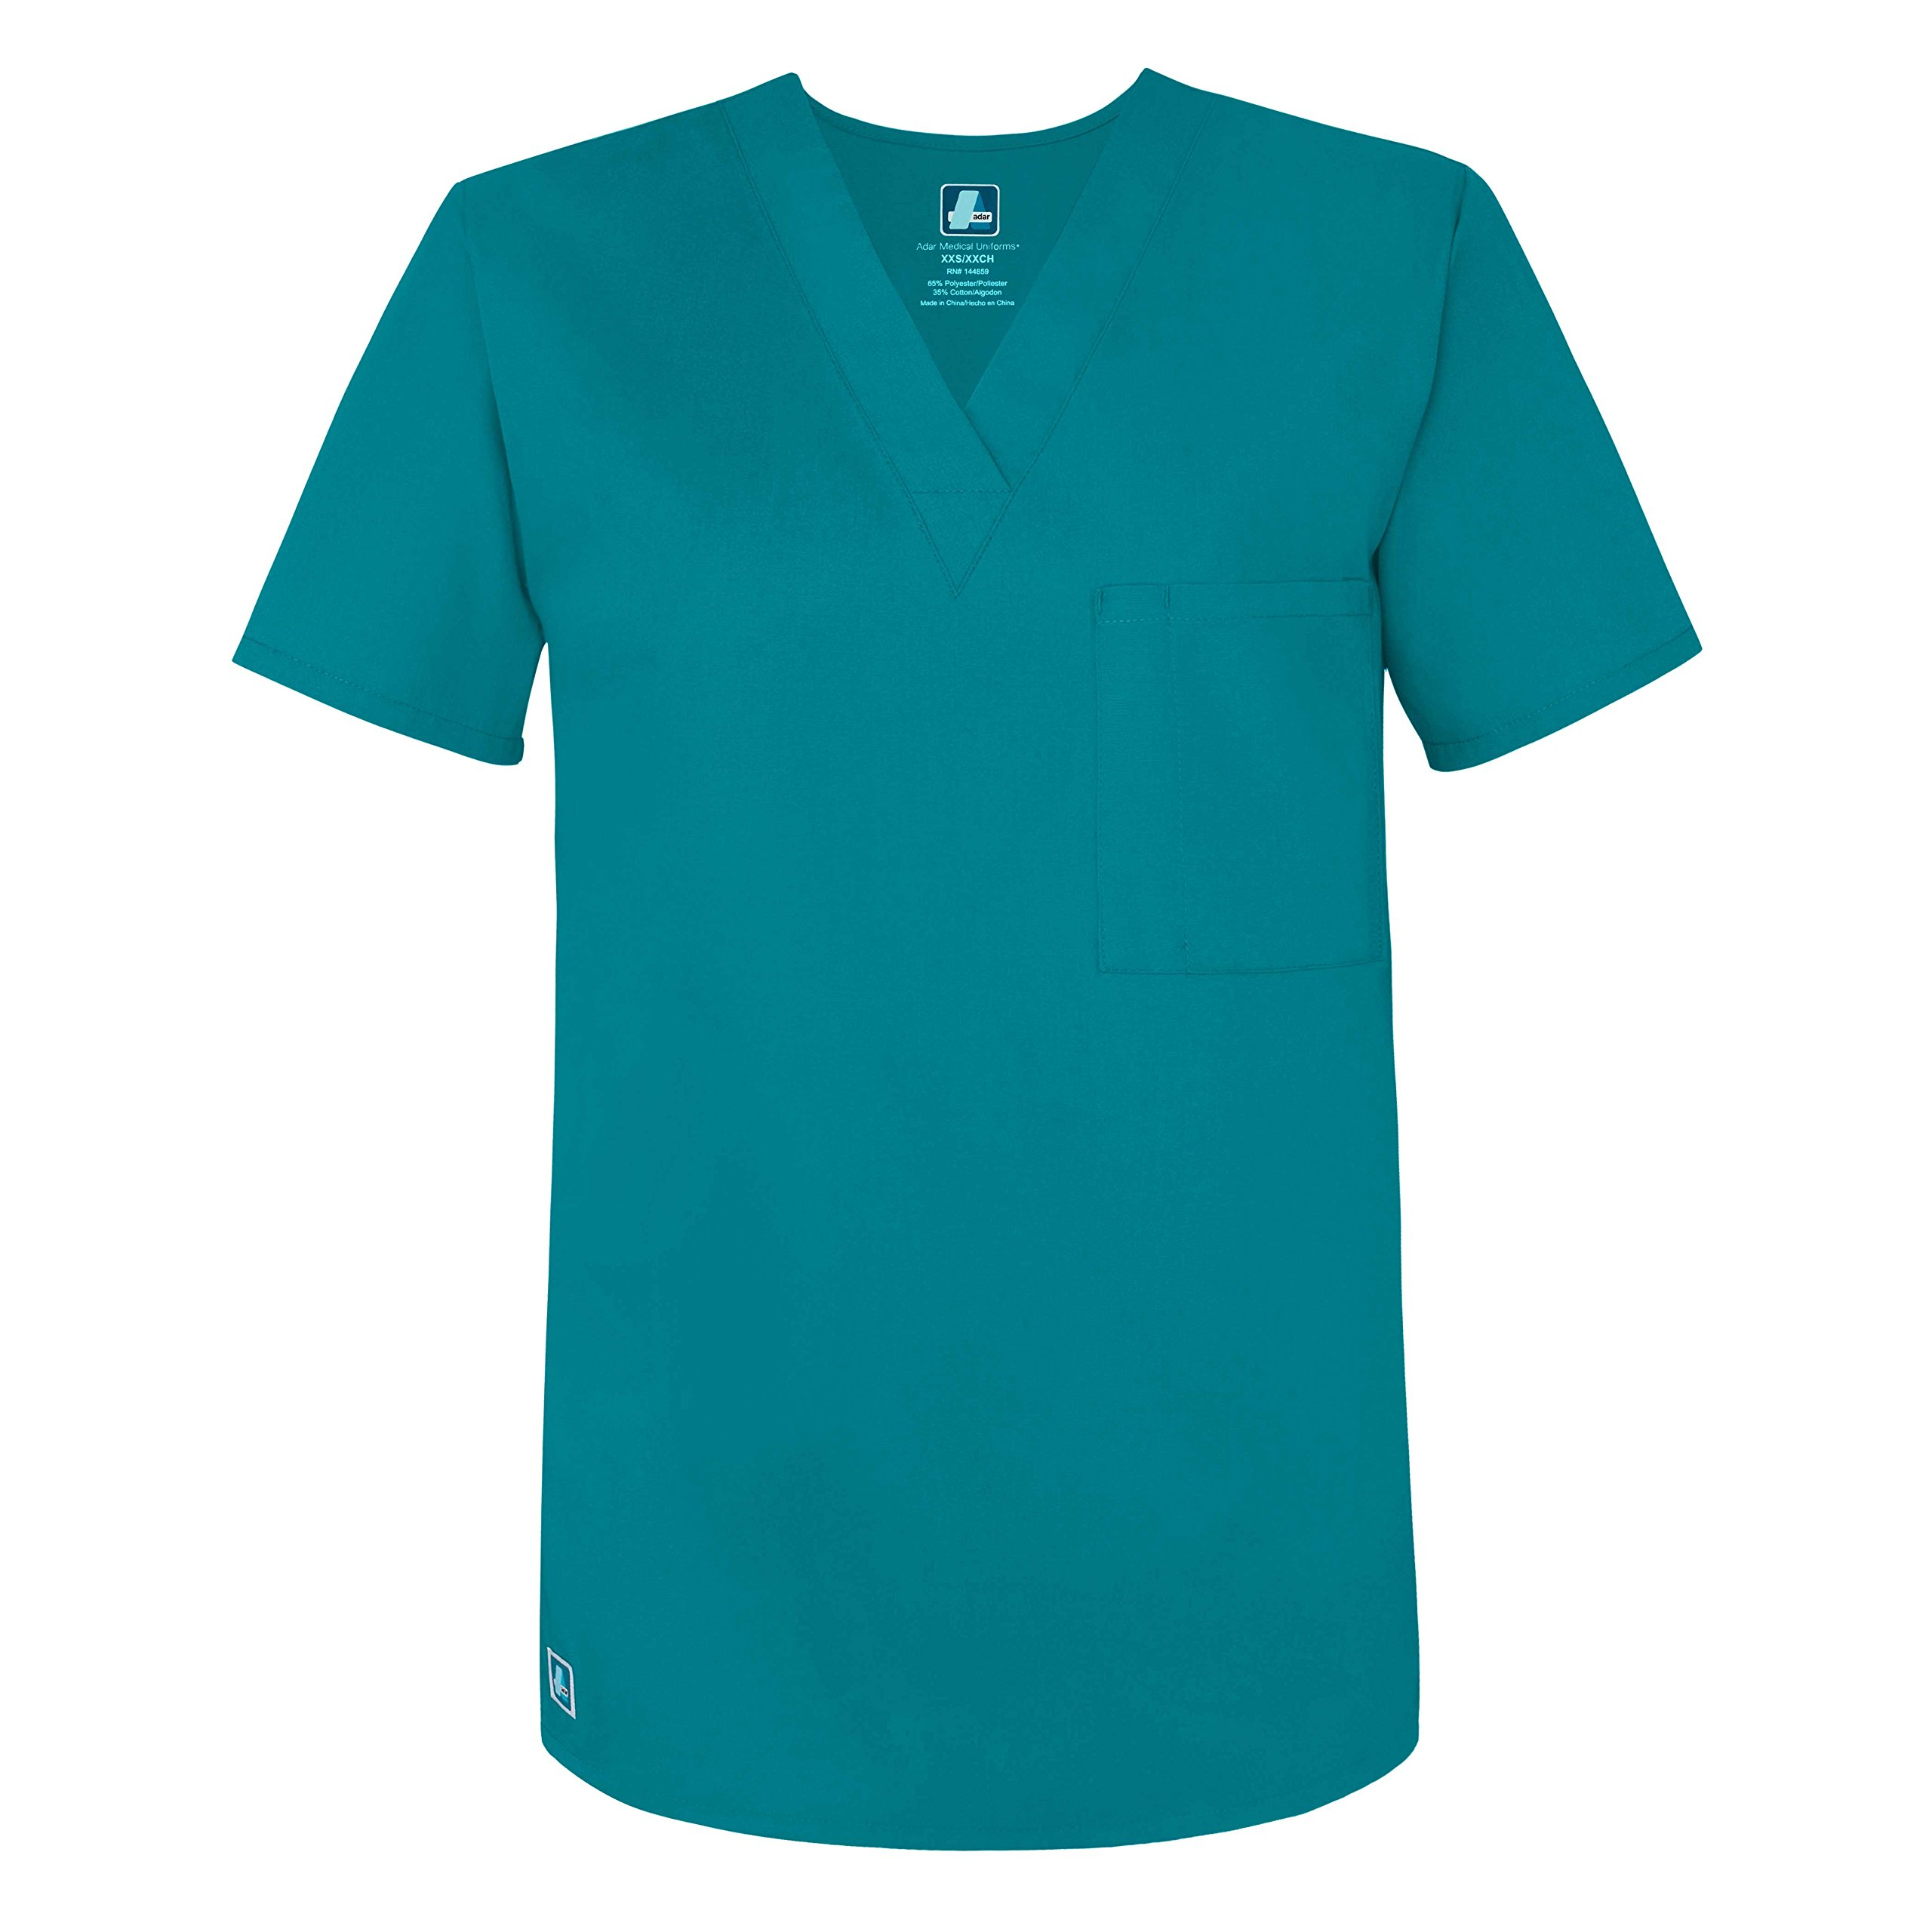 9f5bbd6f647 Adar Universal Unisex V Neck Tunic 1 Pocket (Available in 16 Colors) - 6011  - Teal Green - XS